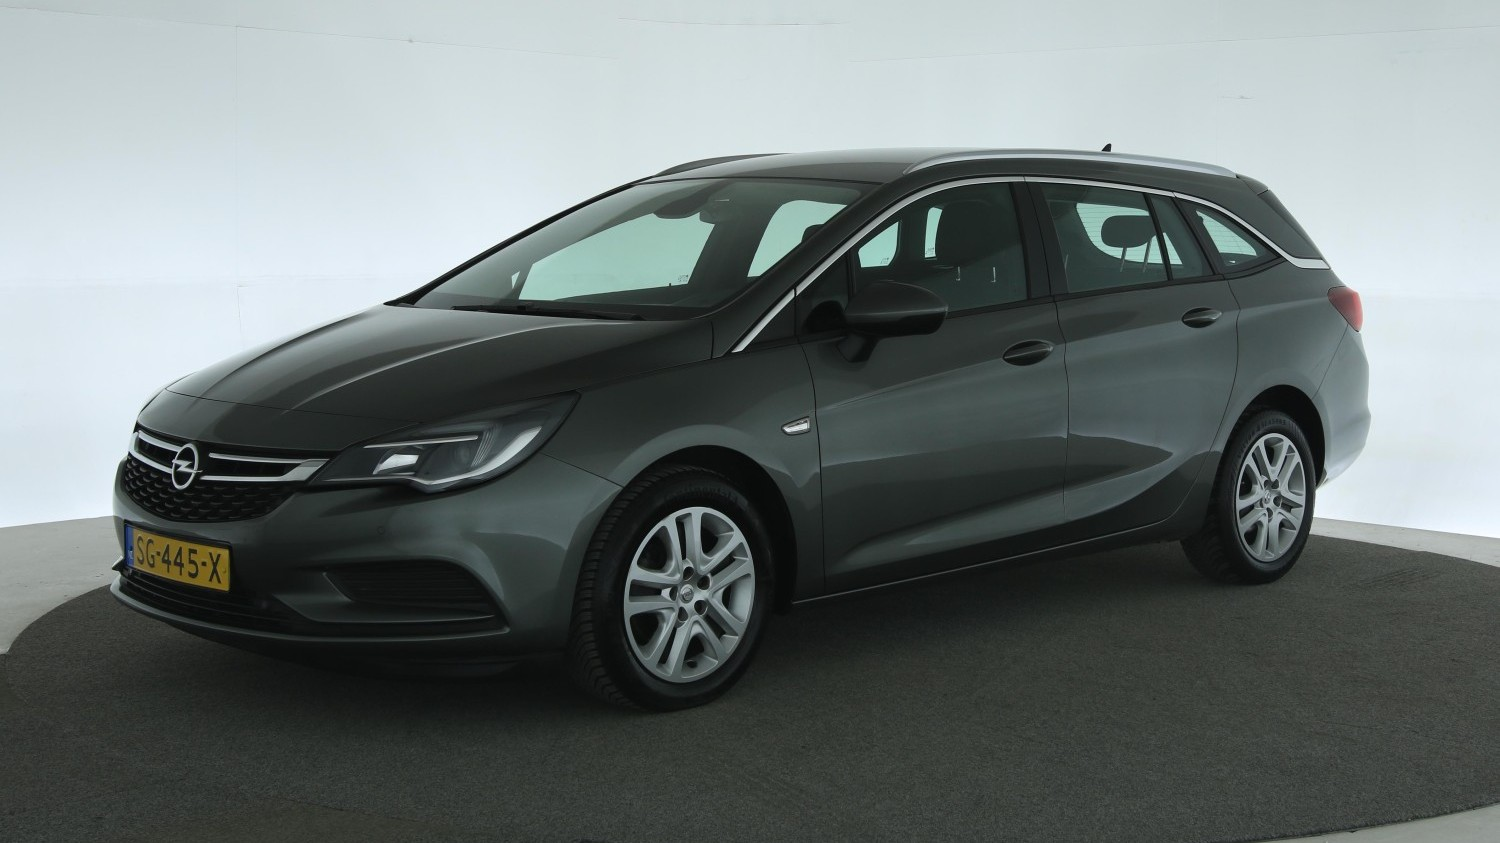 Opel Astra Station 2018 SG-445-X 1